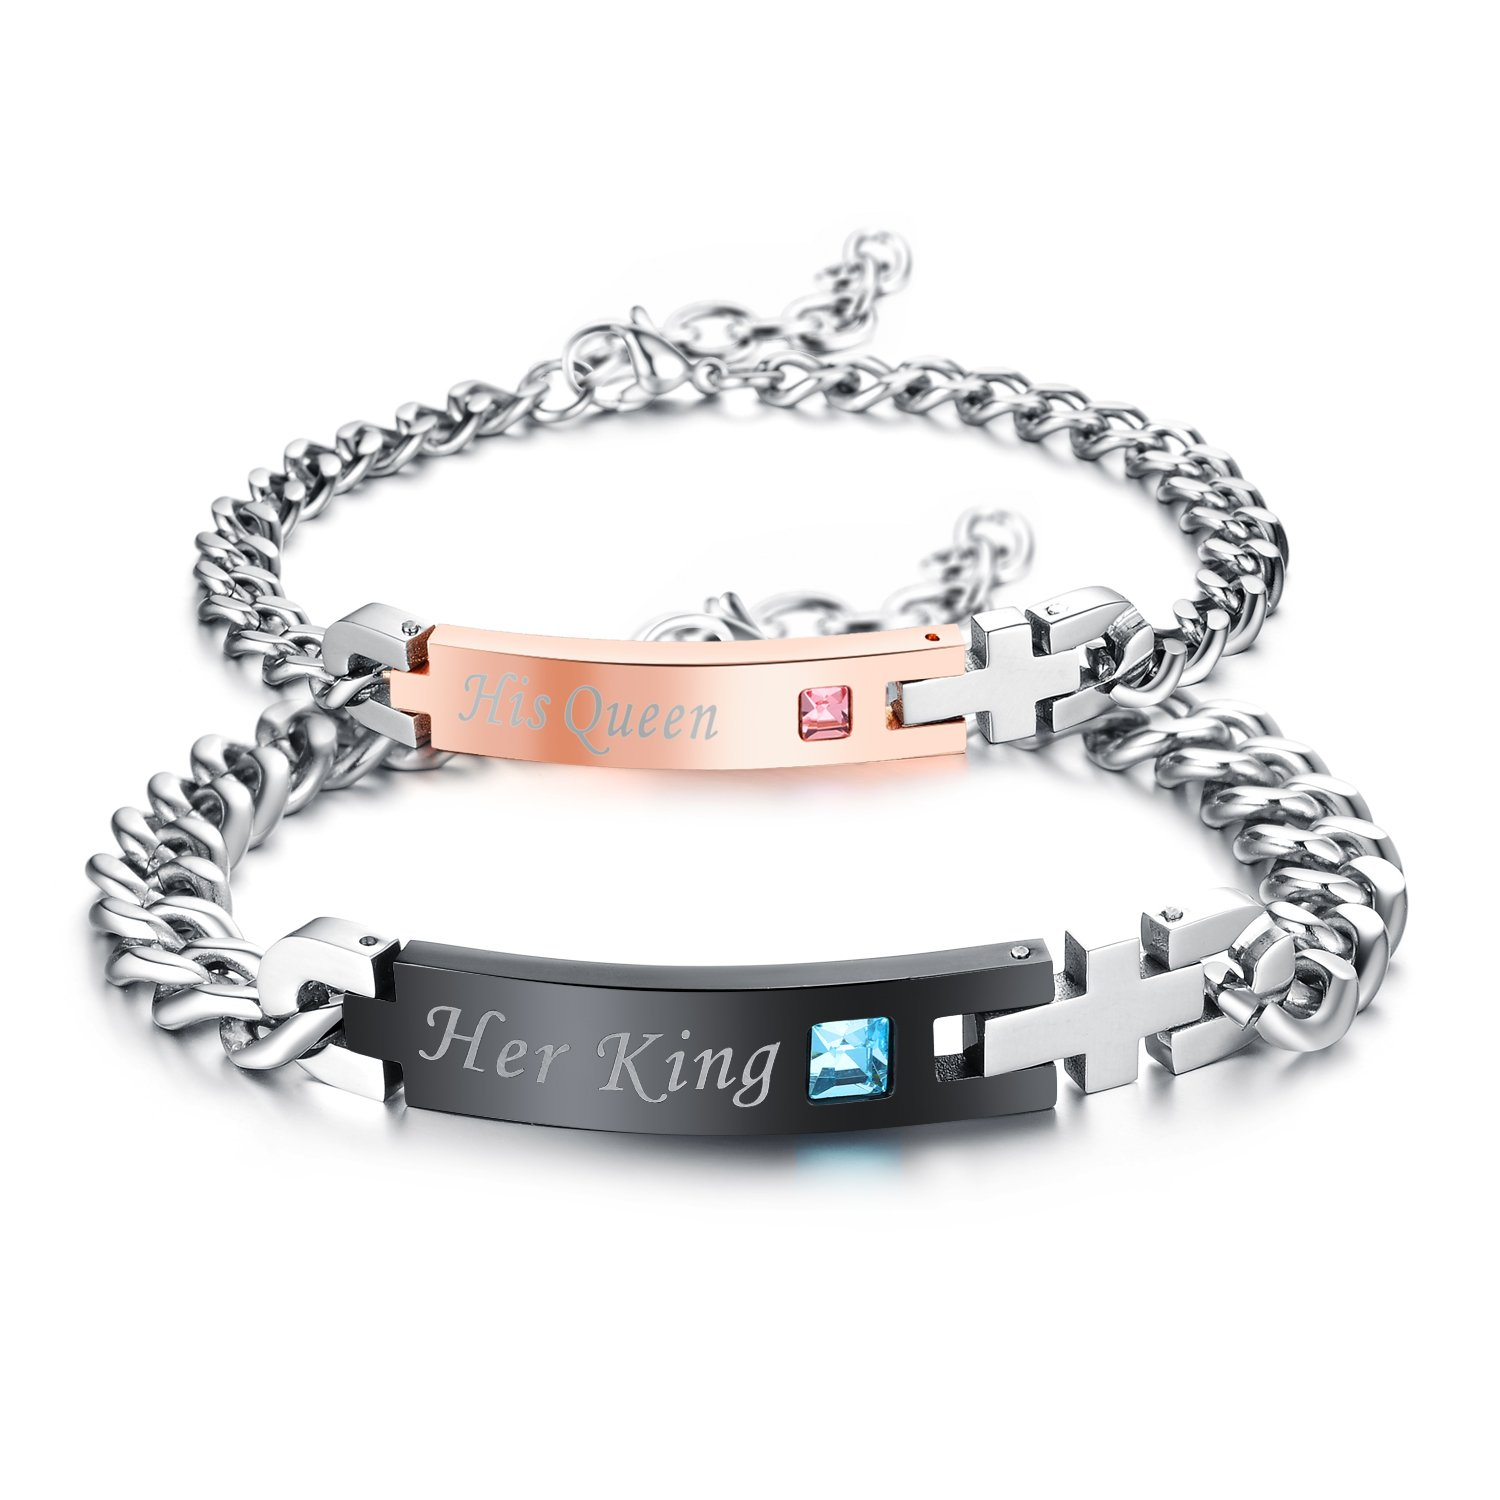 2pcs His Queen Her King Stainless Steel His and Hers Couple Bracelet Valentine's Gift for Lovers